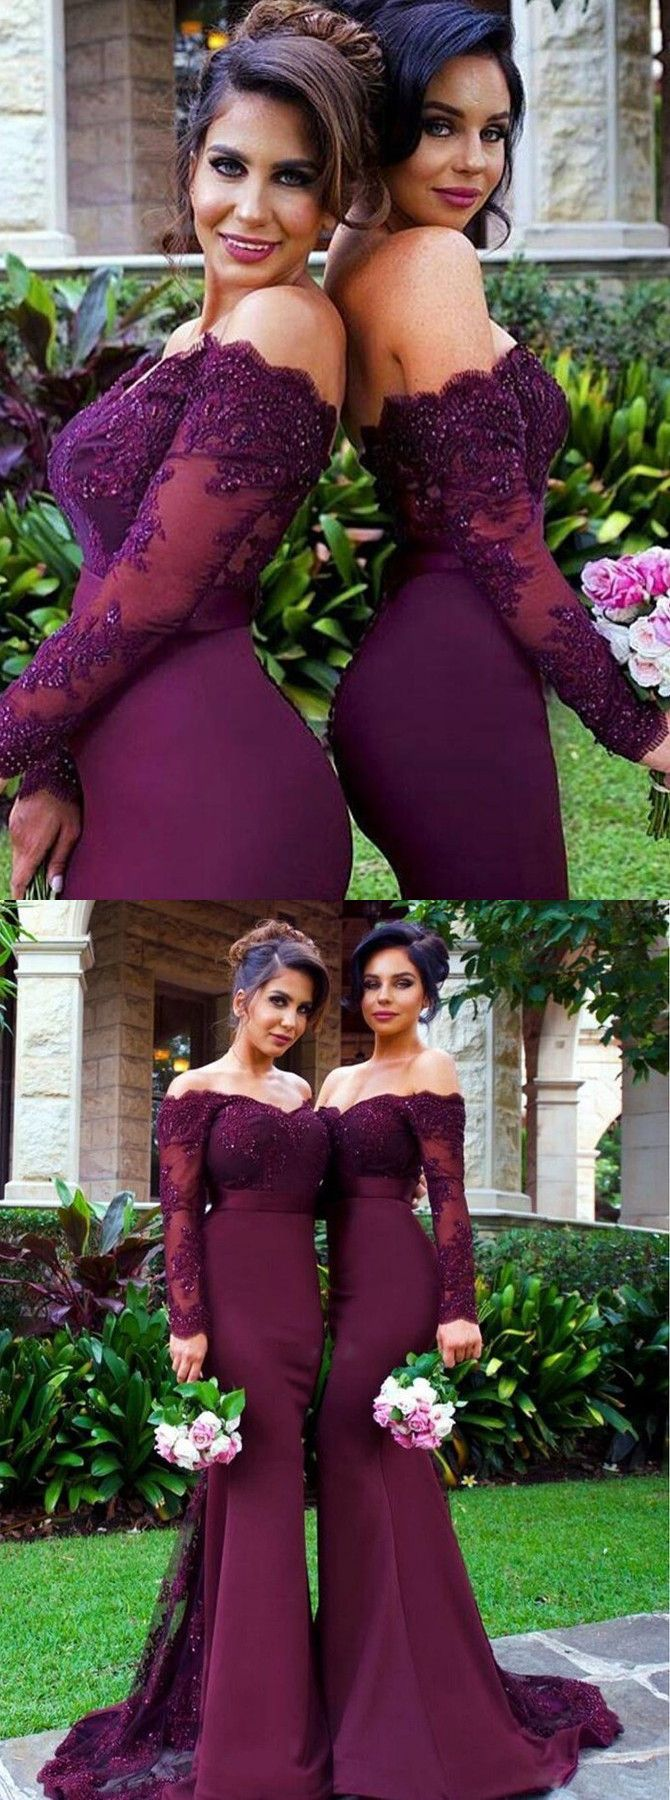 Best 25 long lace bridesmaid dresses ideas on pinterest burgundy bridesmaid dresseslong sleevebridesmaid gownsmermaid bridesmaid dresseslong prom dress ombrellifo Image collections